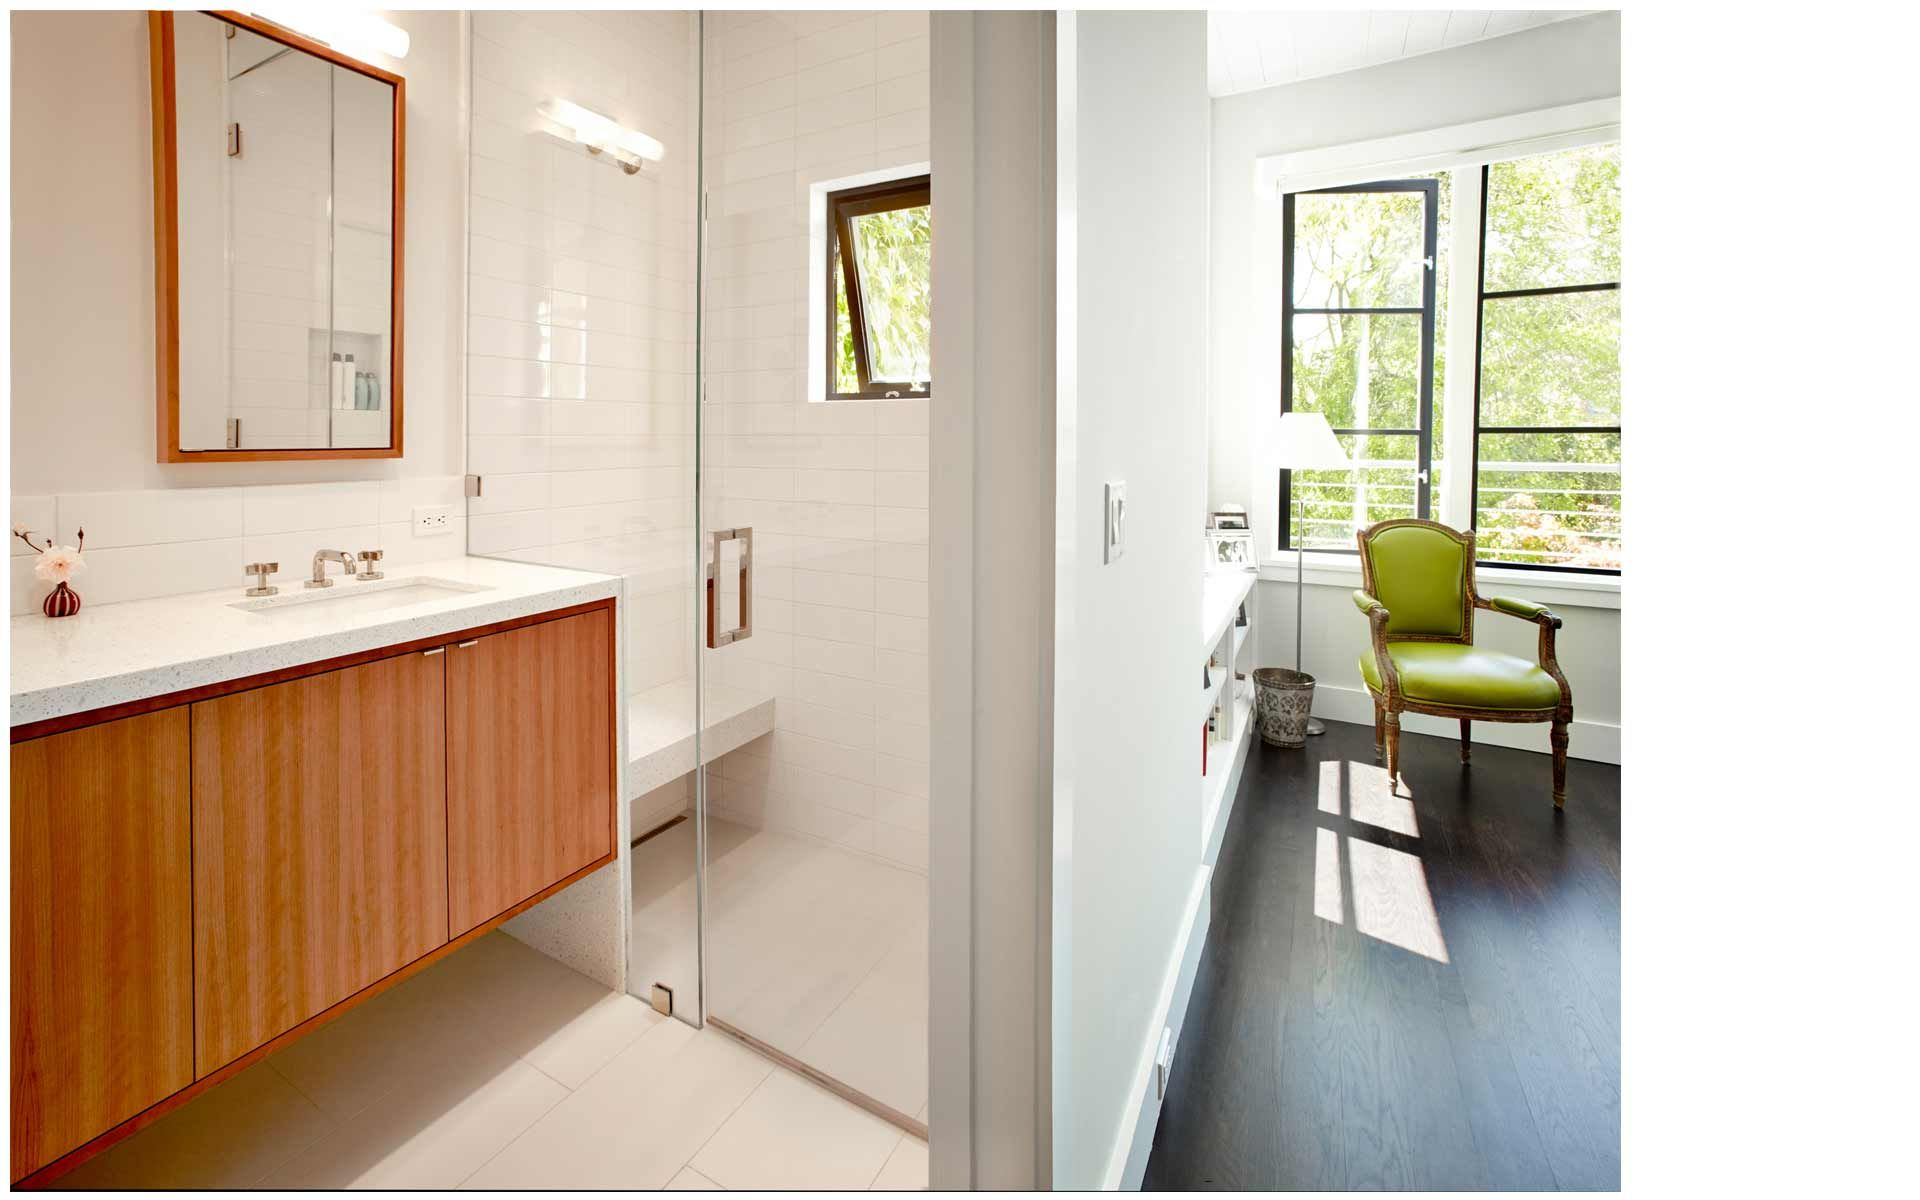 Jeff King And Company: Award Winning Green Building And Remodeling  Contractors In San Francisco |